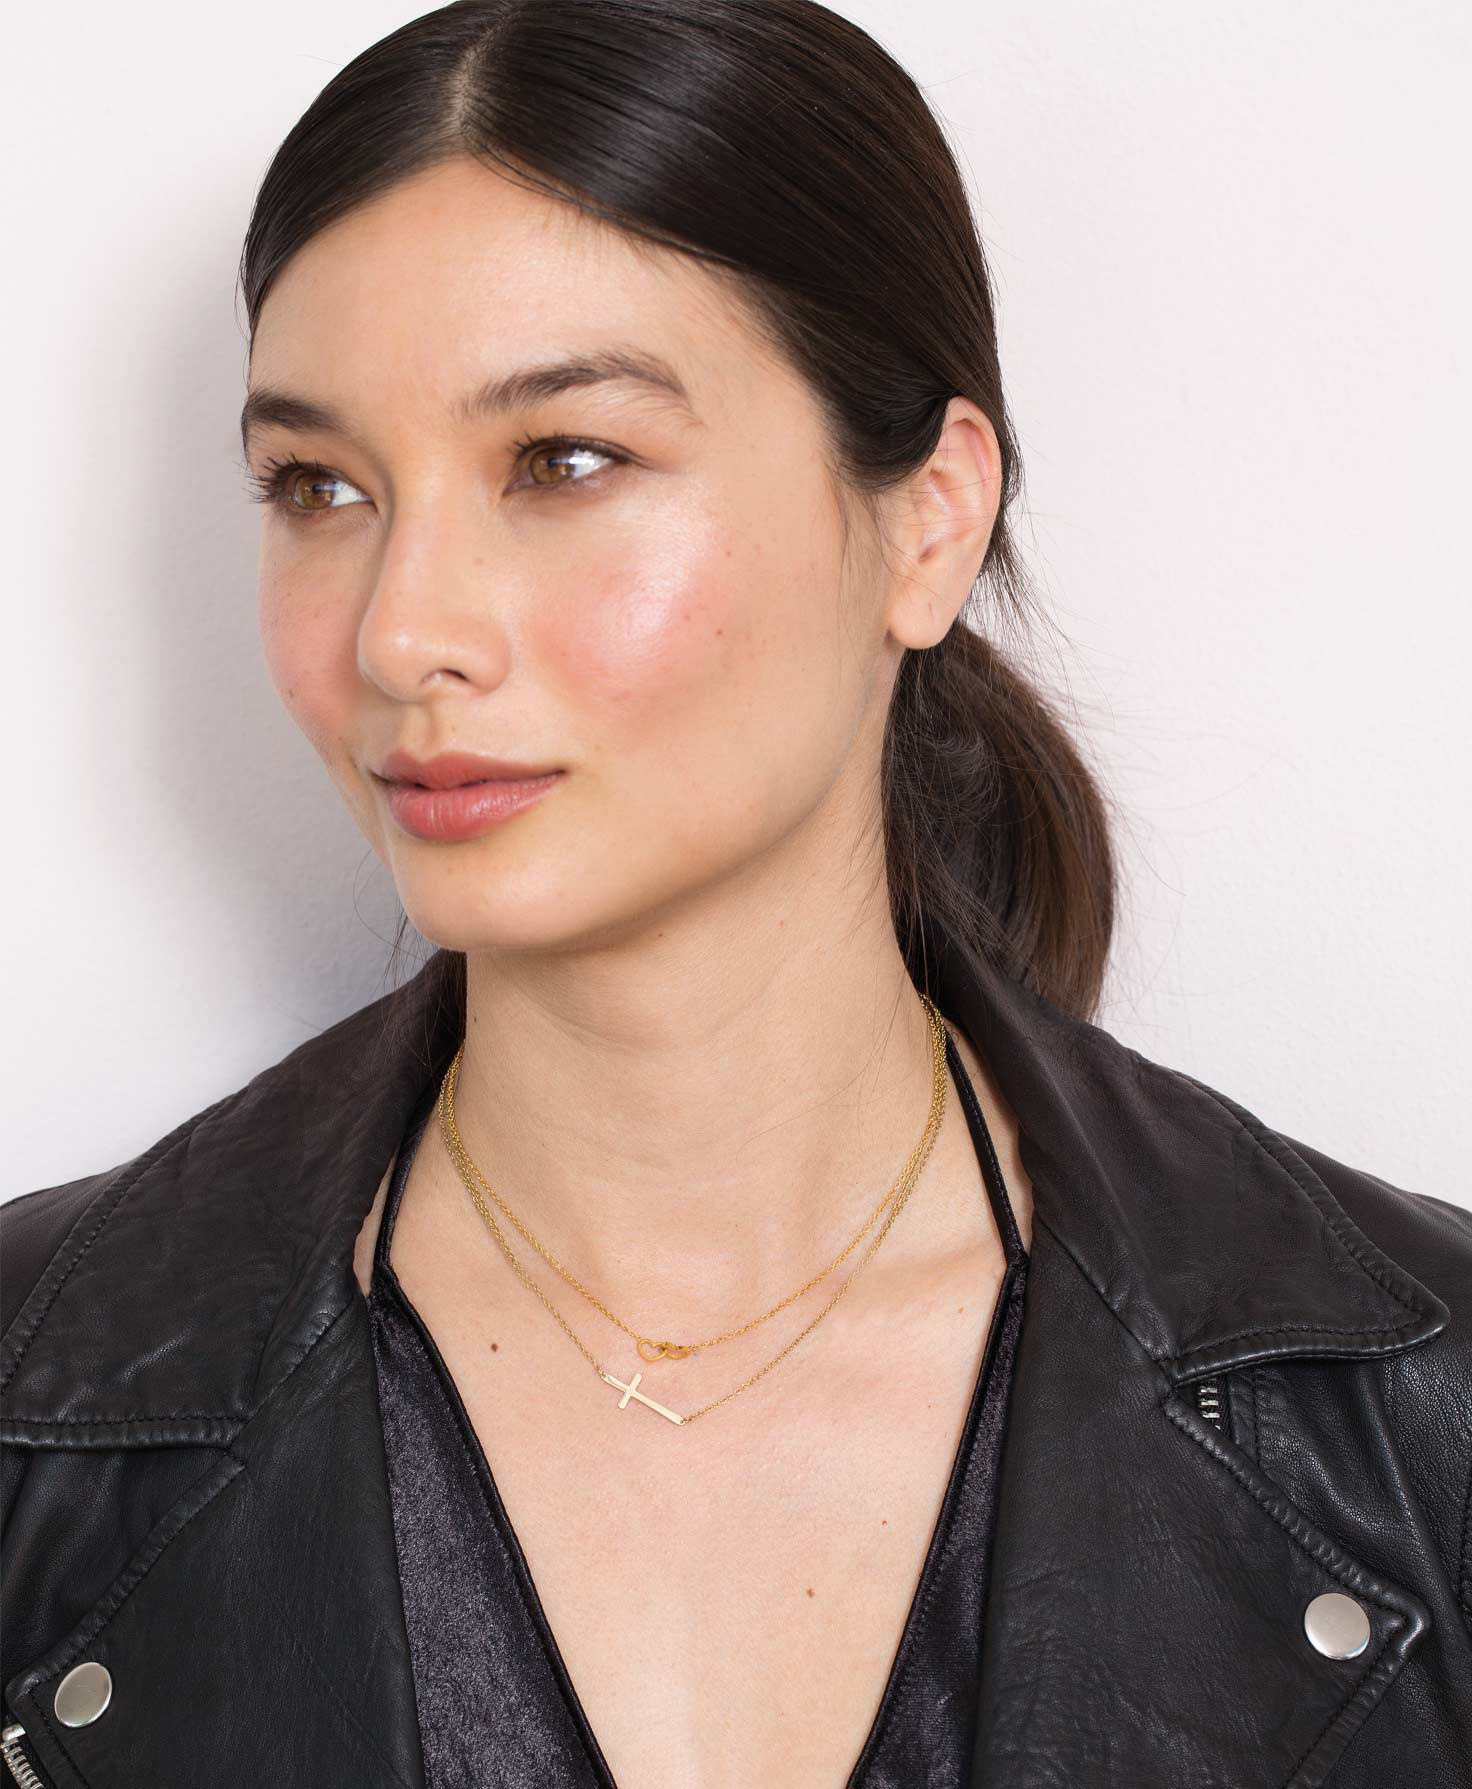 A model wears the short gold Belief Necklace with the Heart to Heart Necklace, which is another short gold necklace. The two together create a dainty golden look.